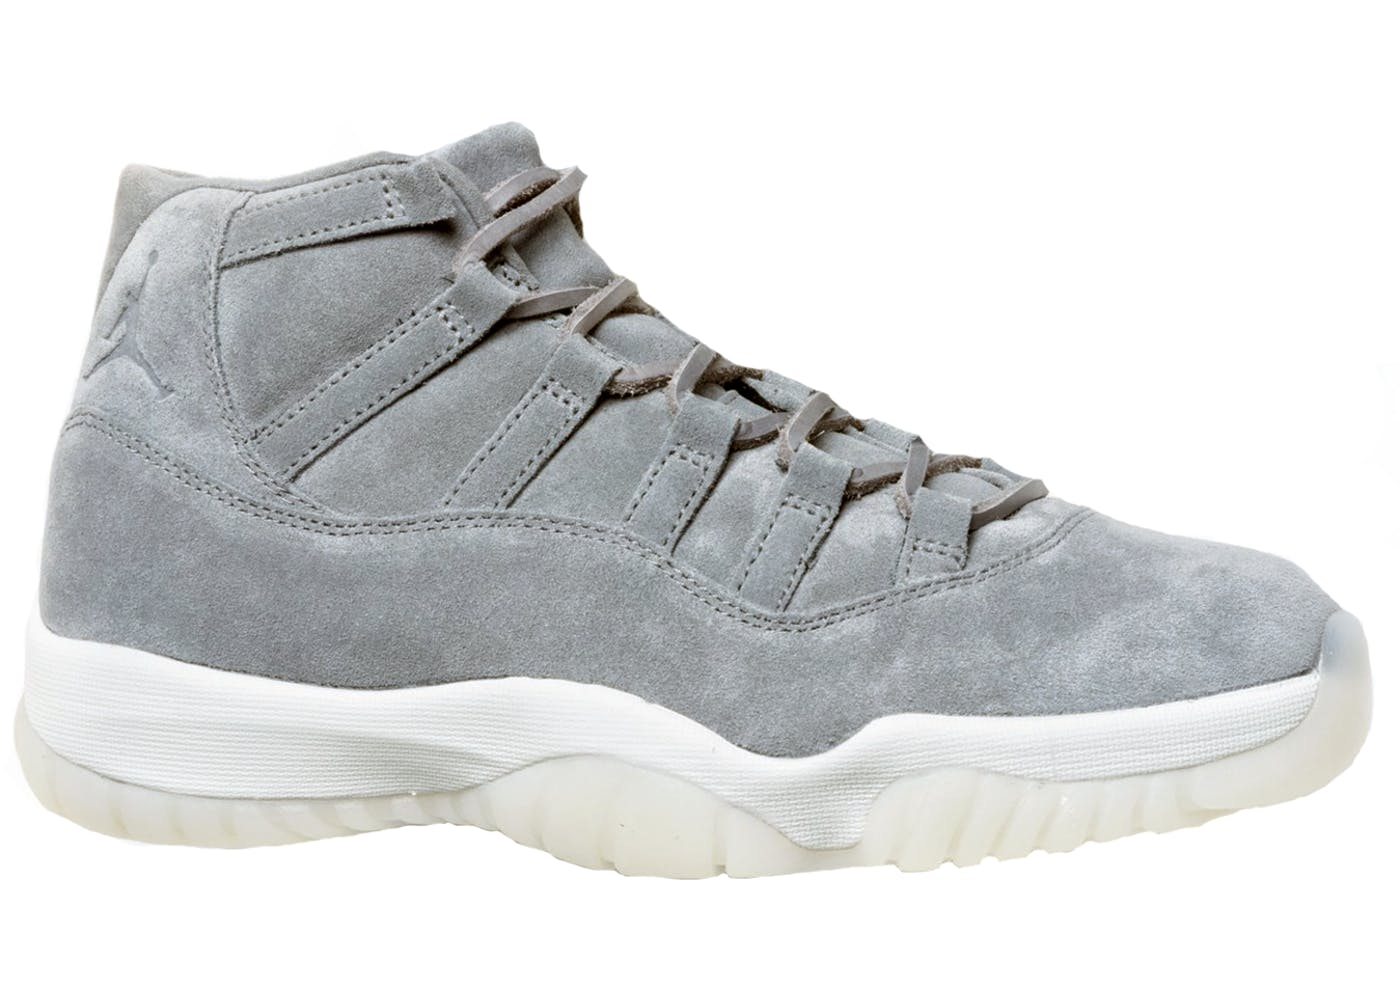 7164853ee4fb Air Jordan 11 Pinnacle Grey Suede